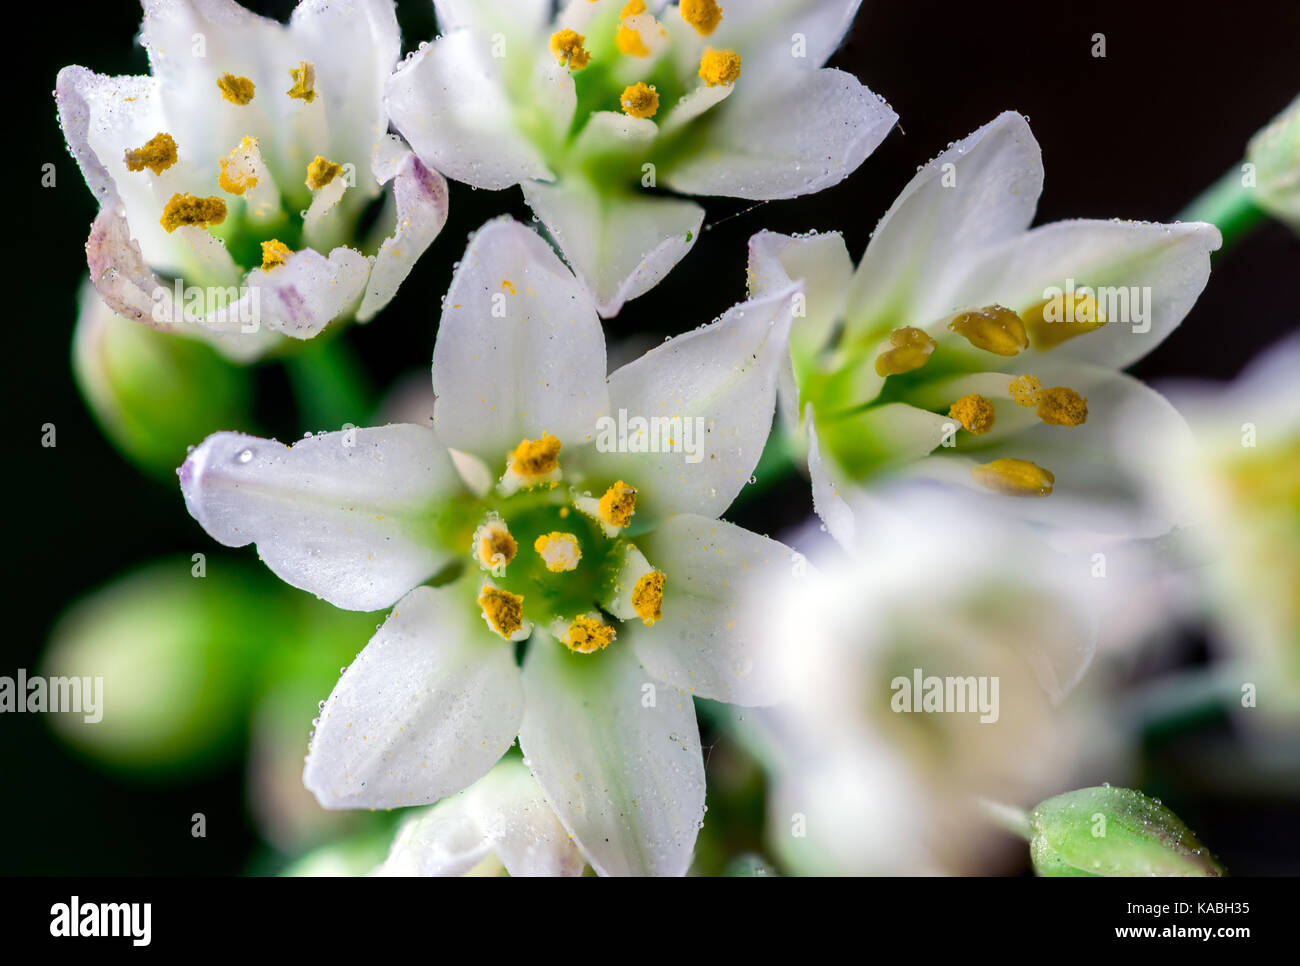 Beautiful White Petals Flowers With Yellow And Green Center Showing